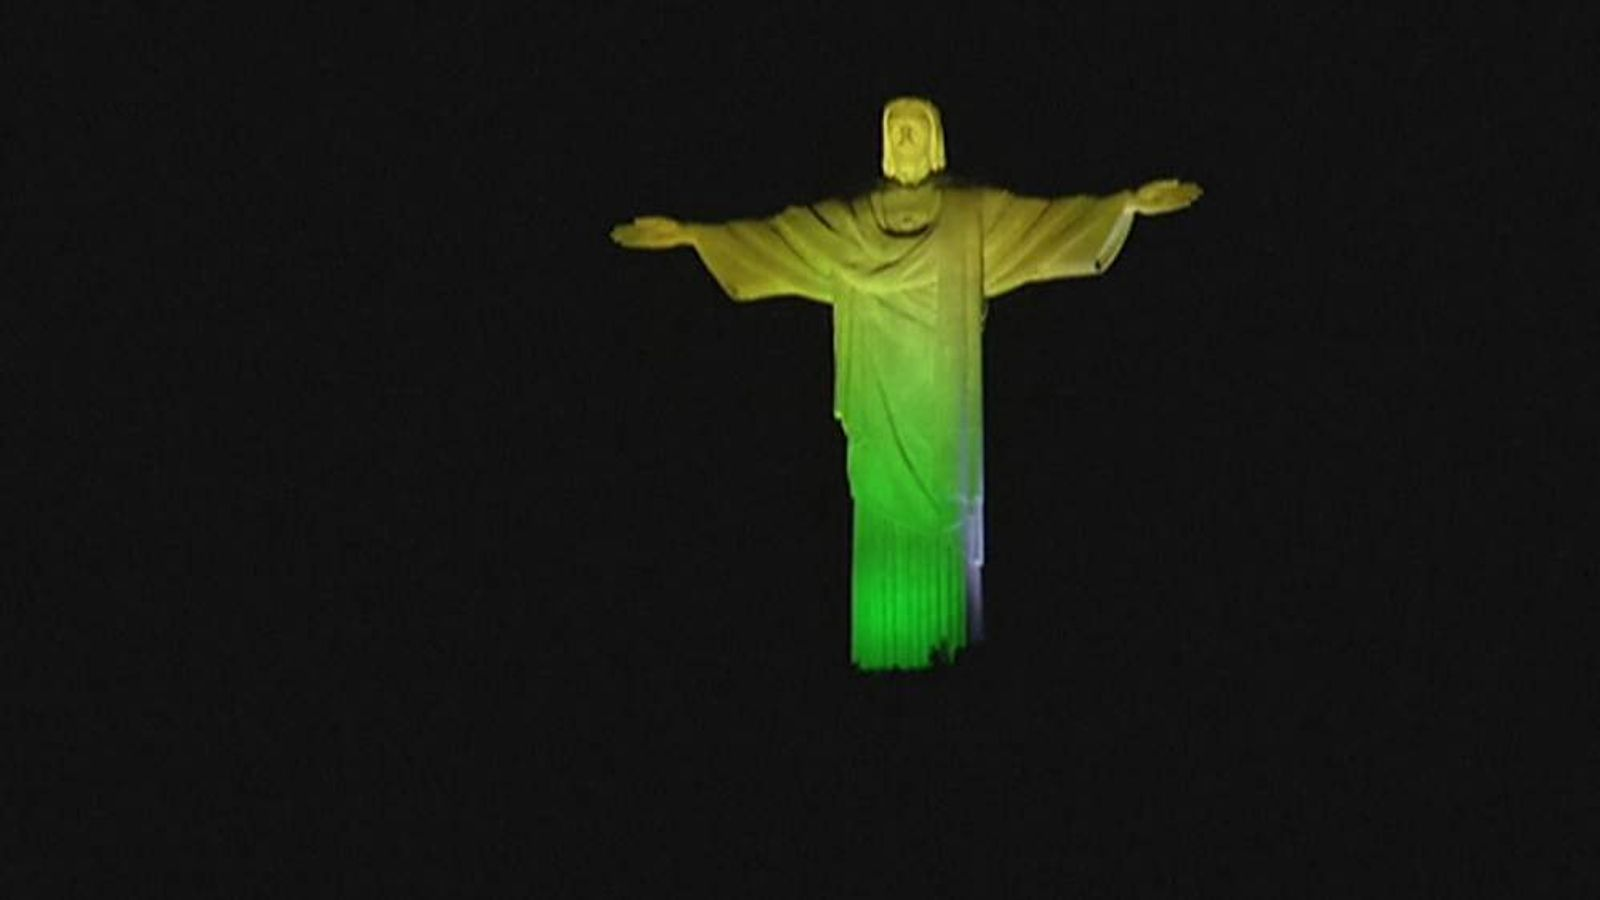 Christ the Redeemer lit up for the World cup